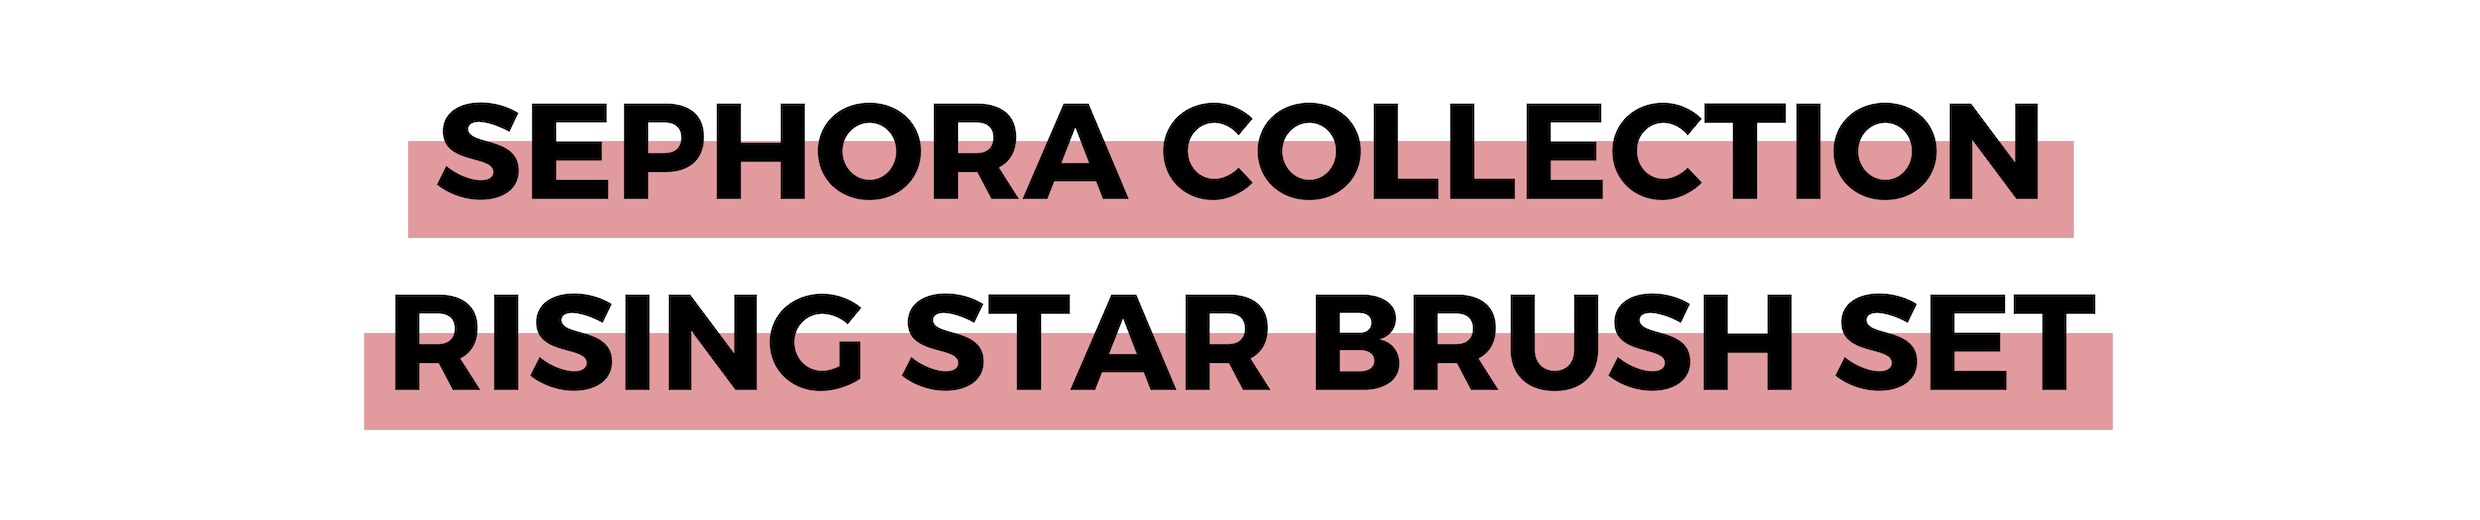 SEPHORA COLLECTION RISING STAR BRUSH SET.png